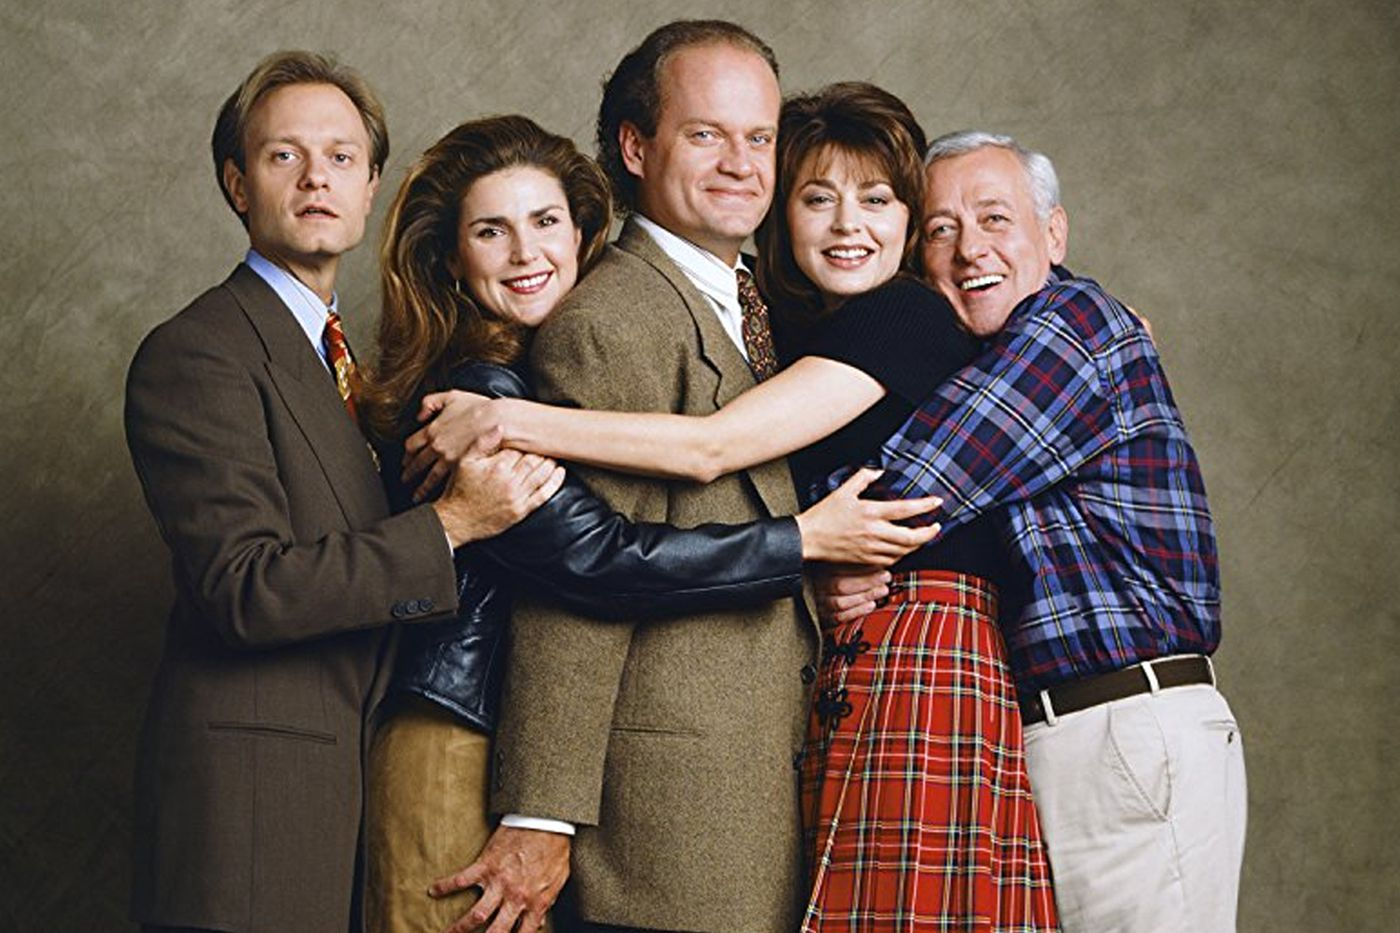 Frasierverse and One Fan's 107 Unseen Seasons of 'Frasier